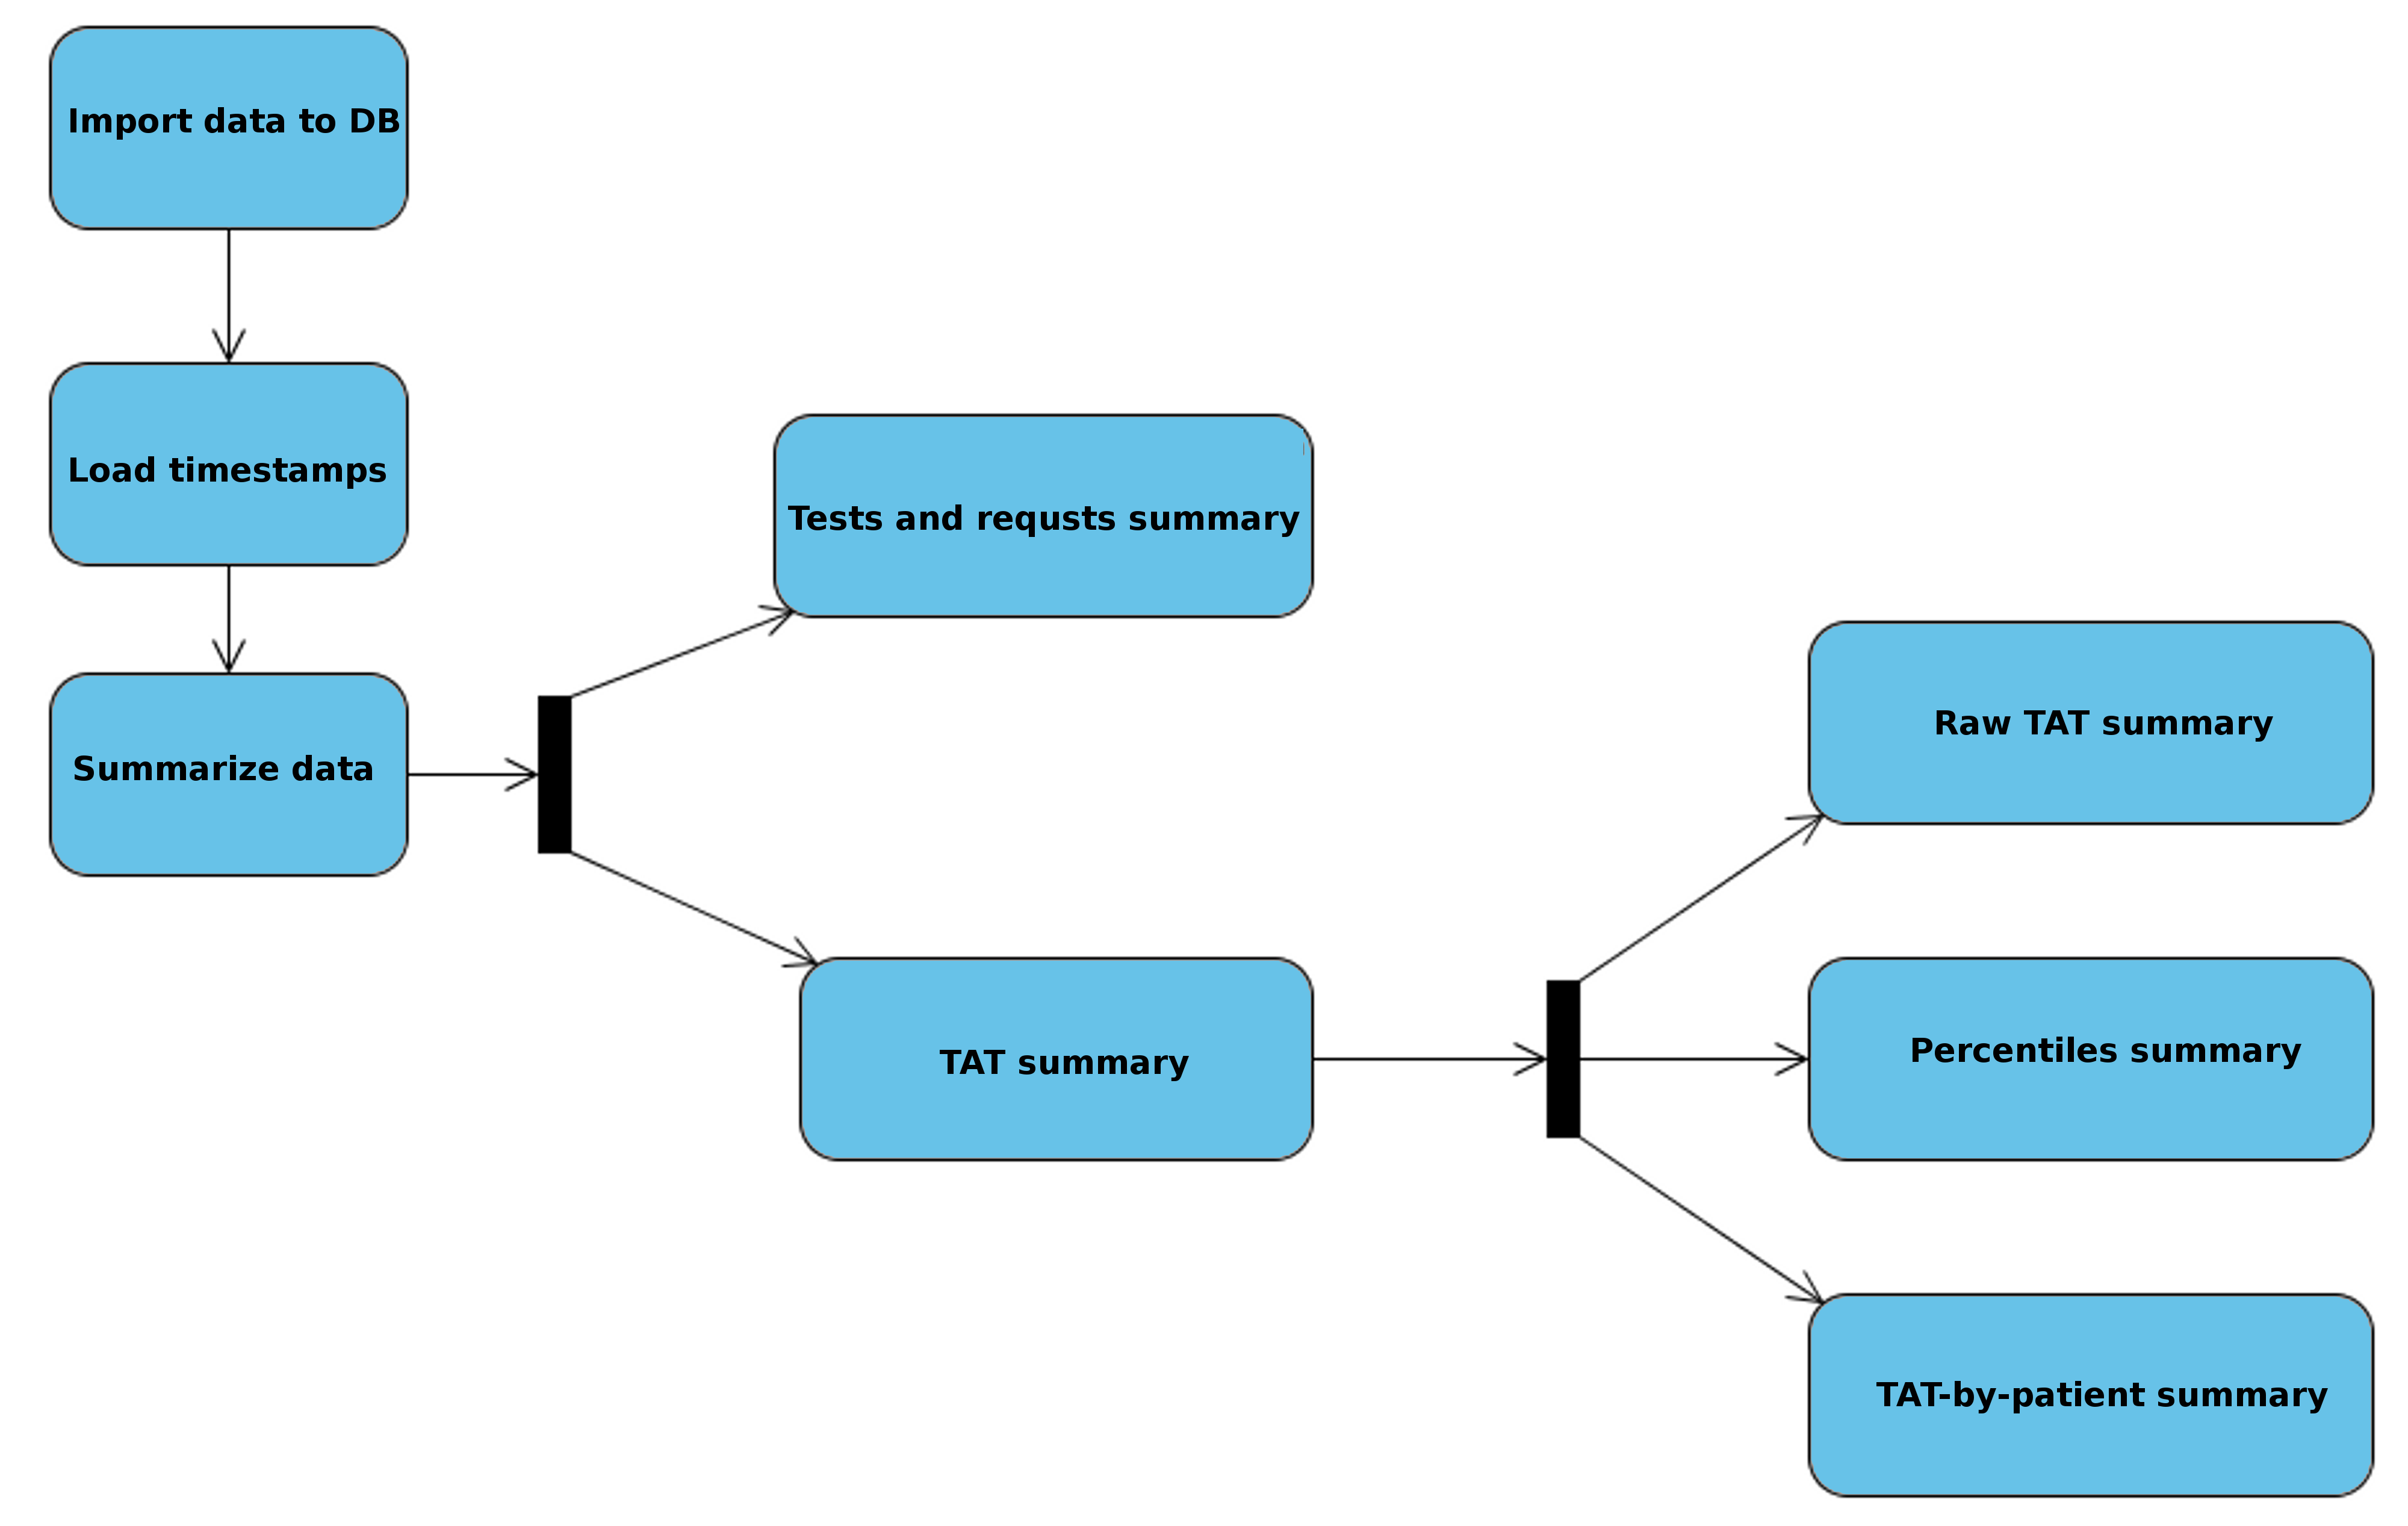 IJMR - DB4US: A Decision Support System for Laboratory Information